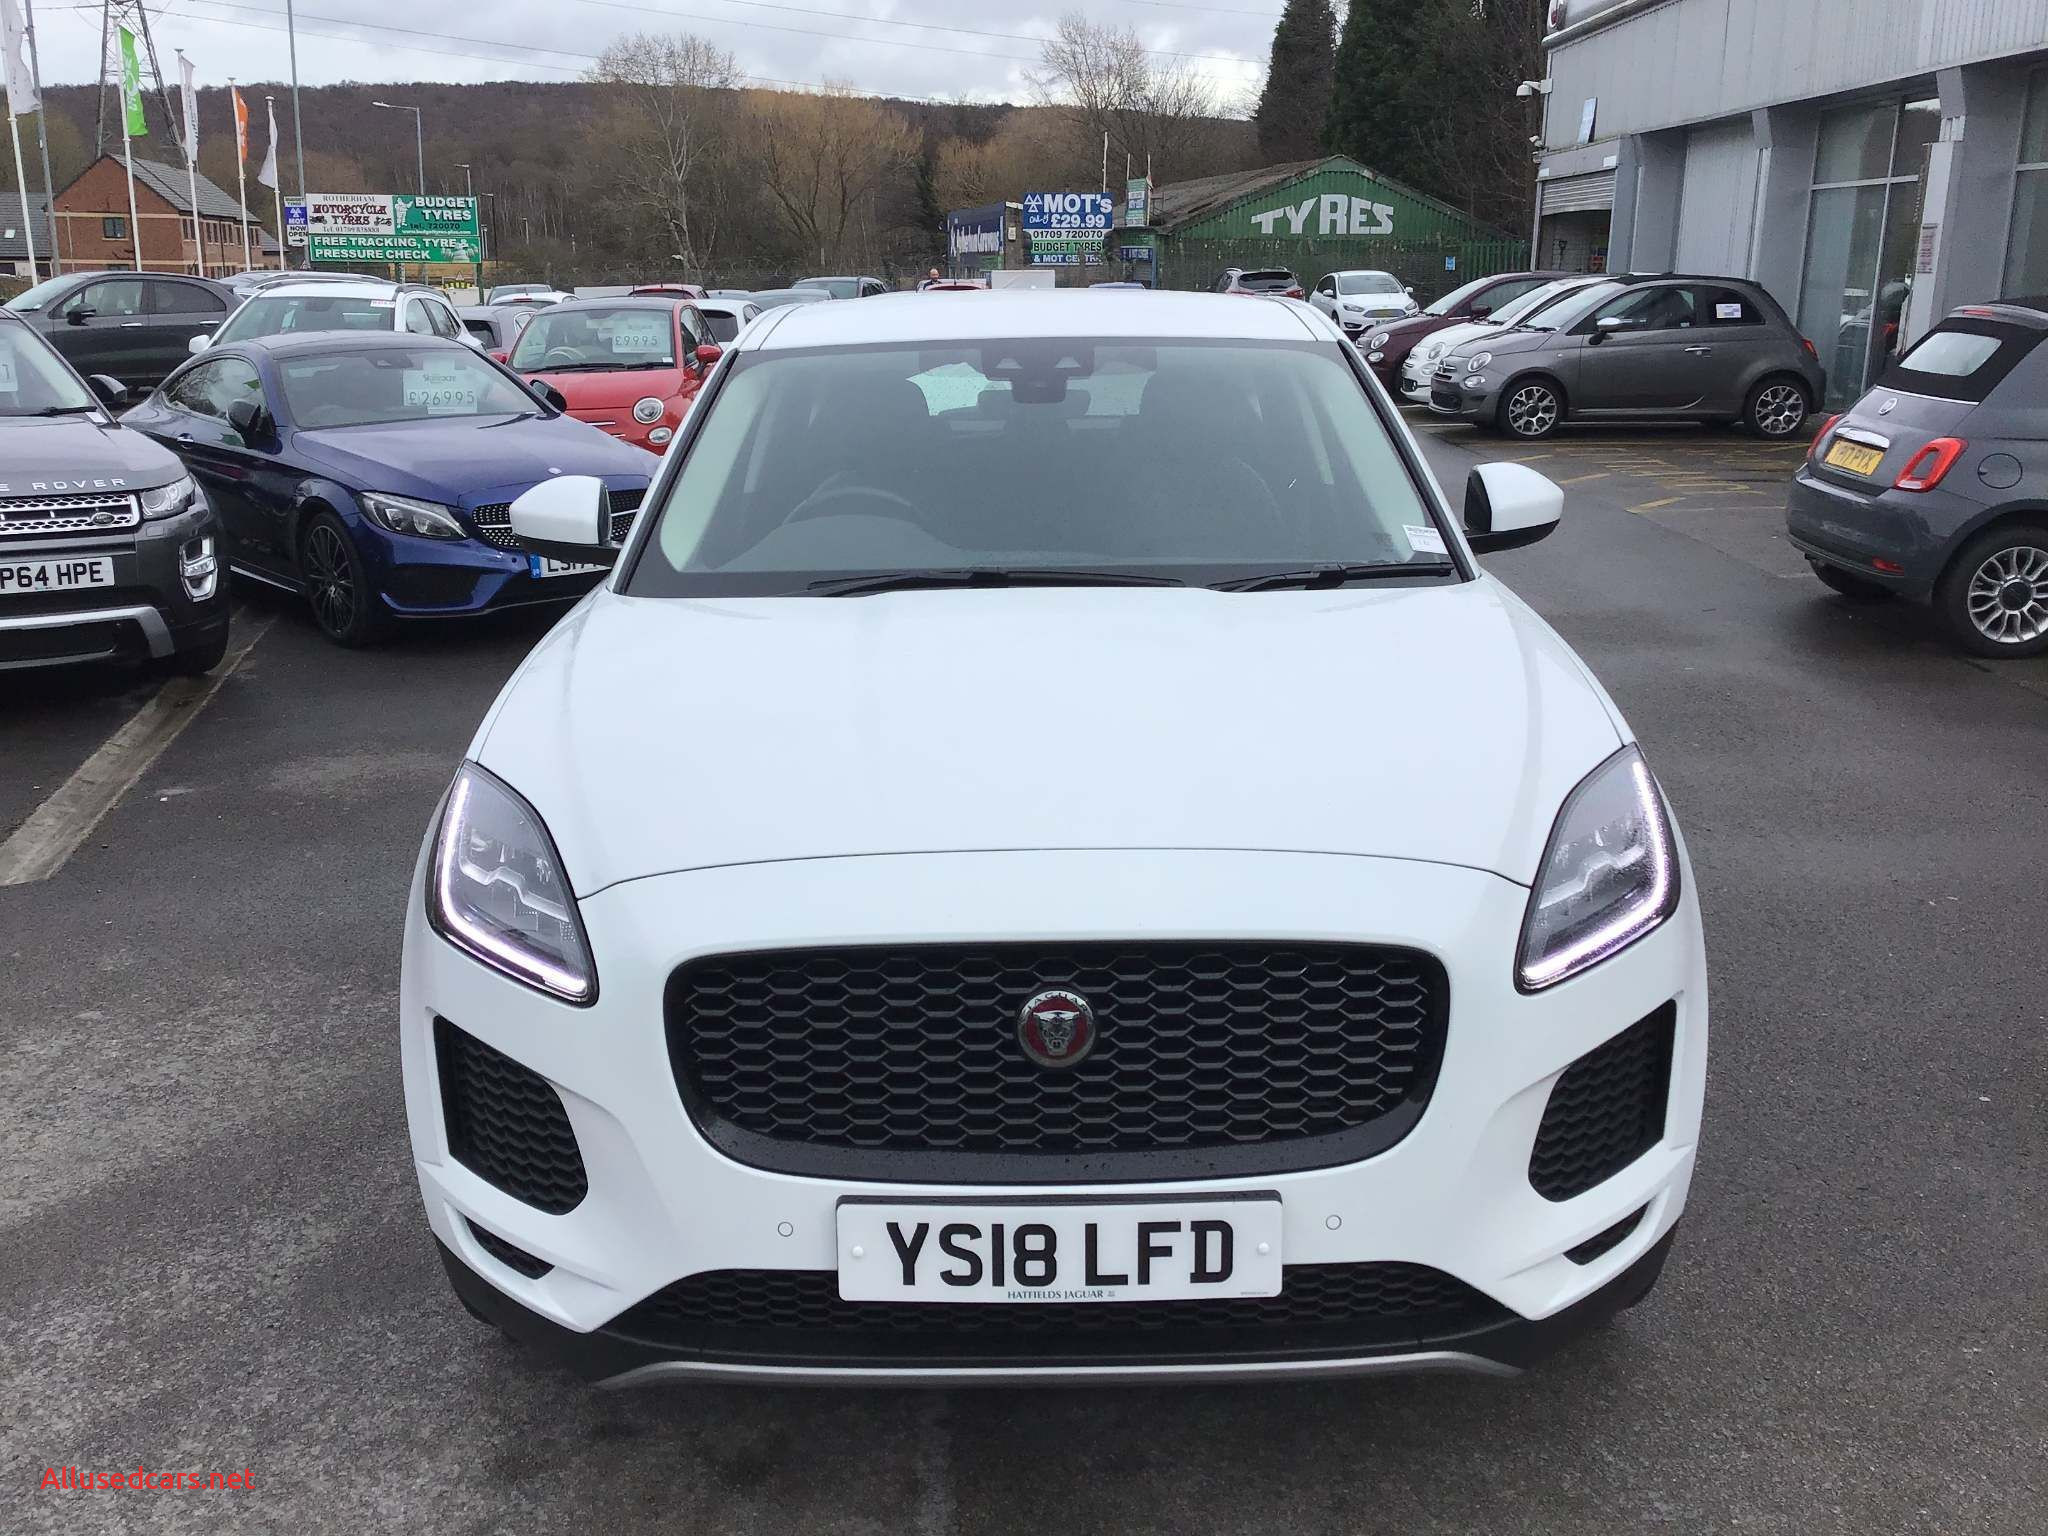 Find Used Vehicles Awesome Used Jaguar E Pace 2 0d Se 5dr Auto Ys18lfd Stoneacre